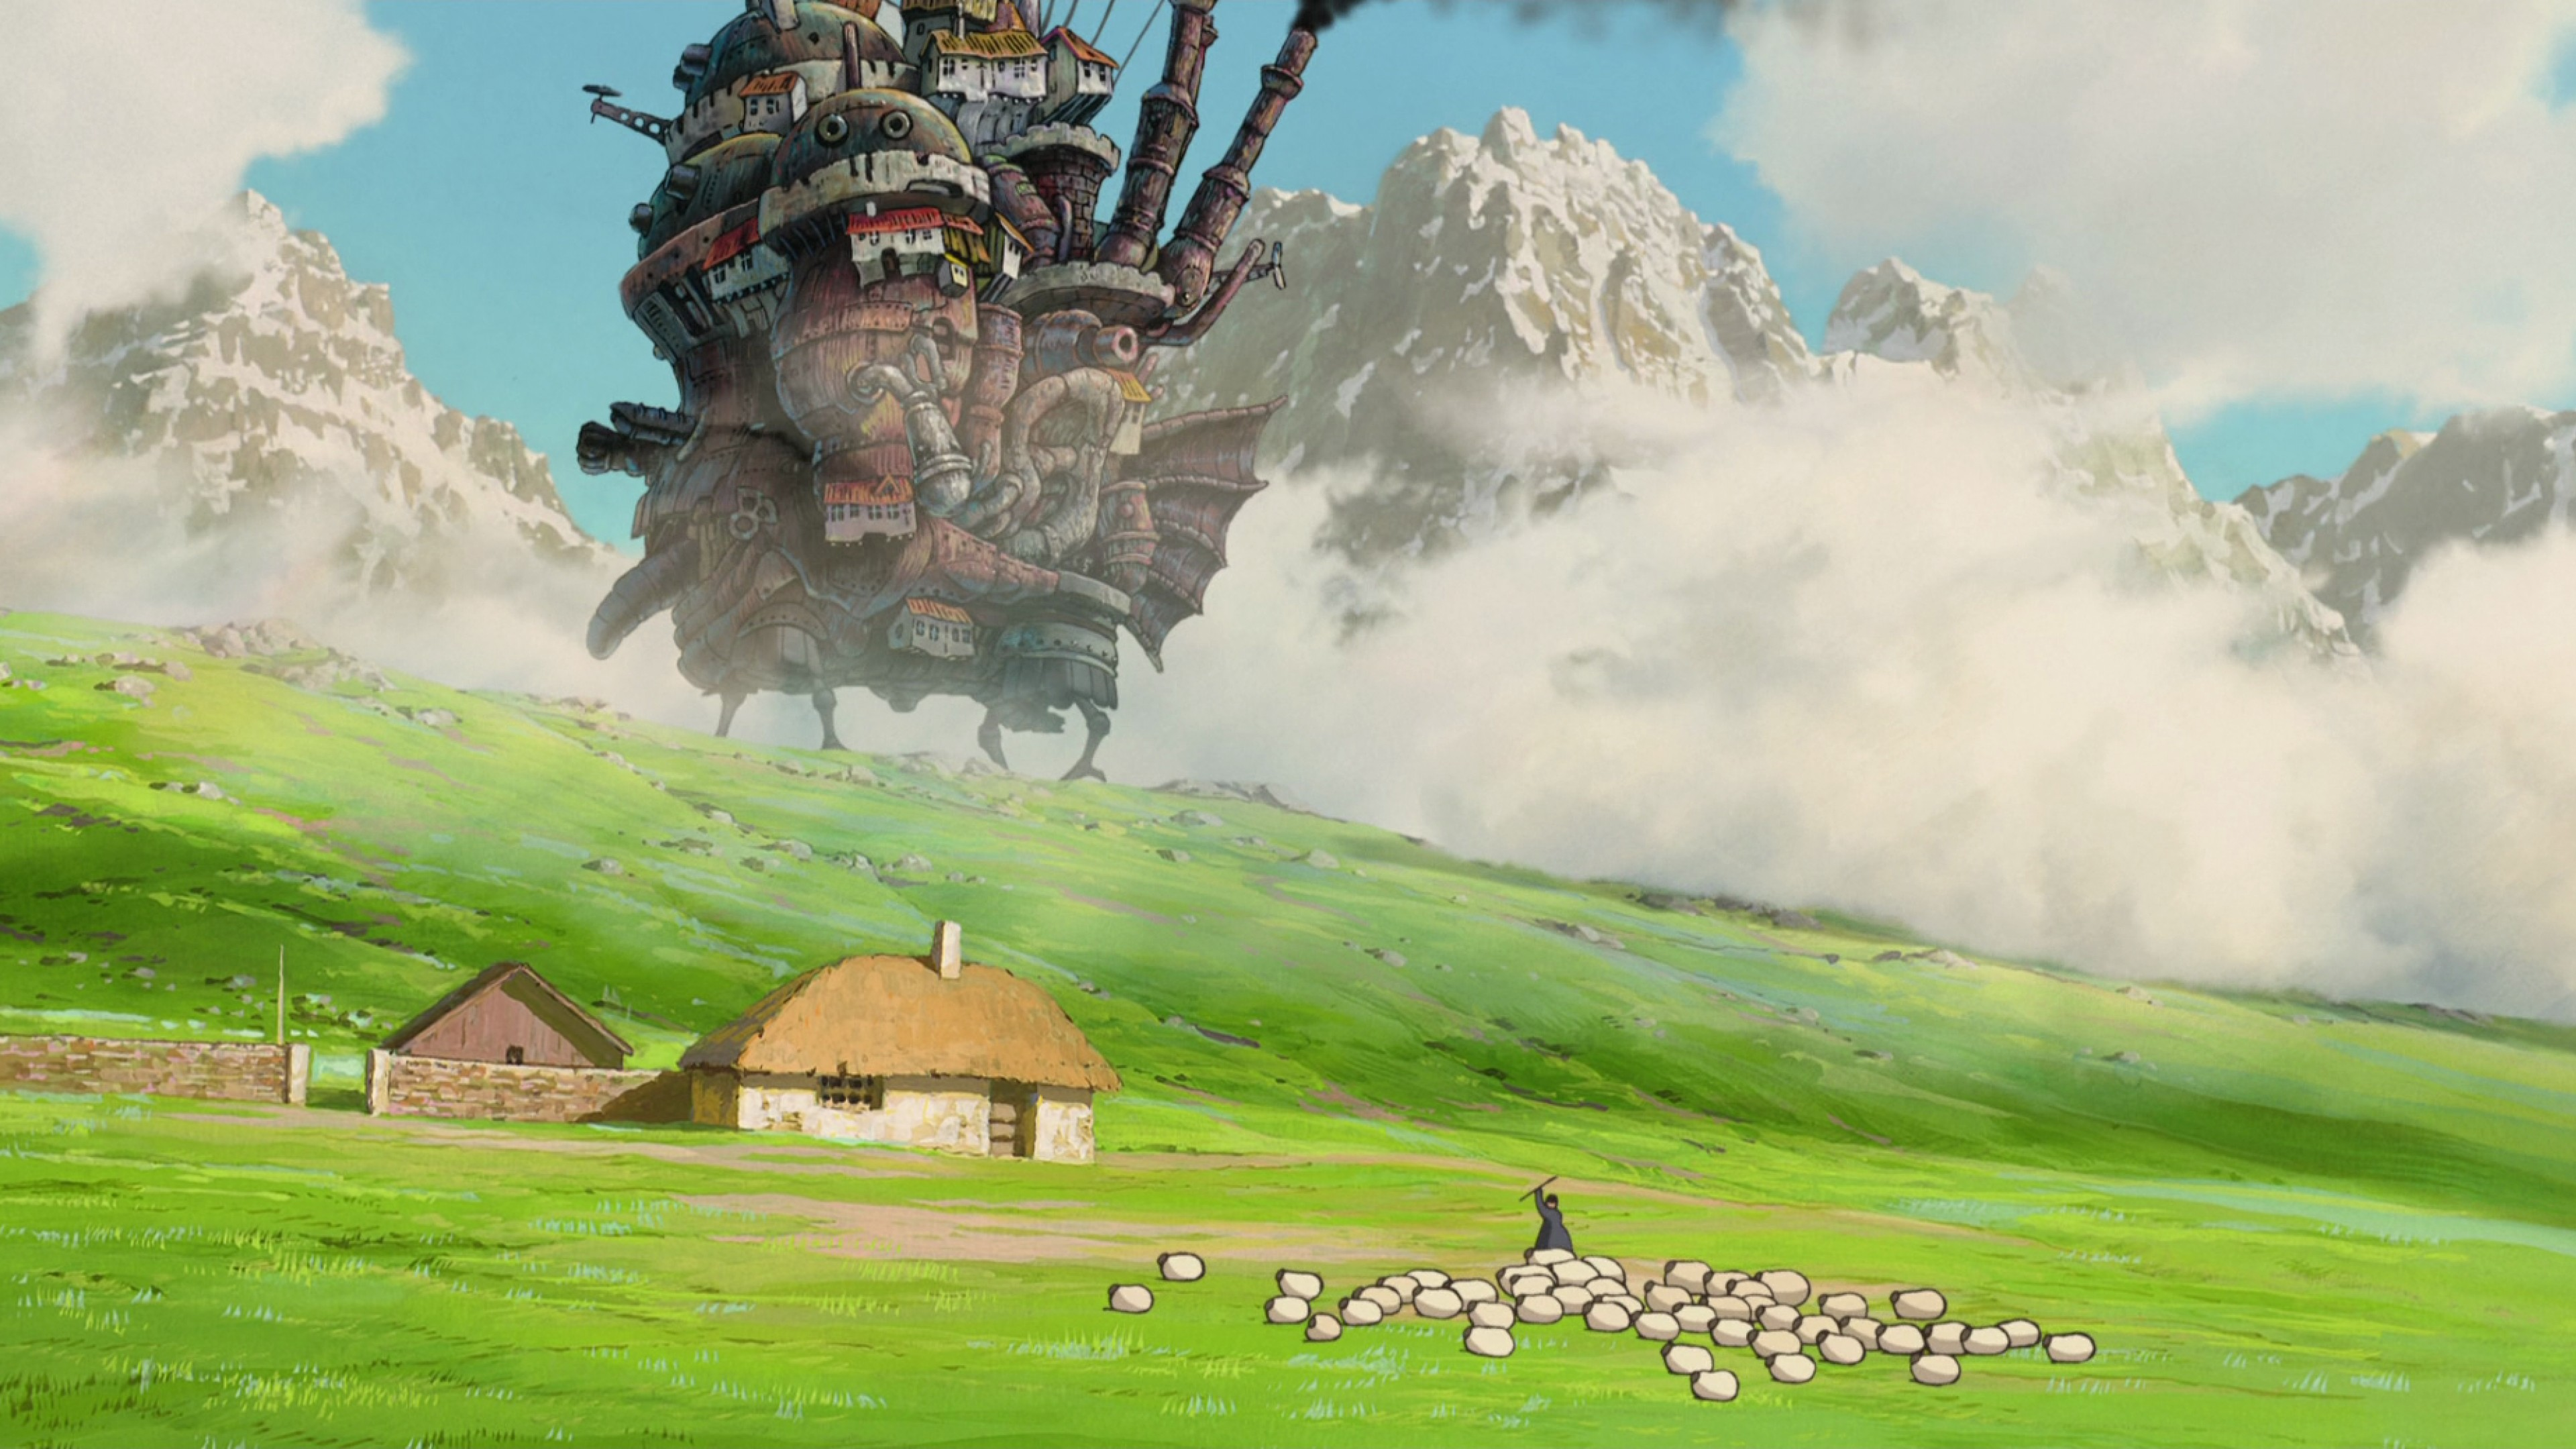 Hd Ghibli Wallpaper 1080: Studio Ghibli Wallpapers ·① WallpaperTag